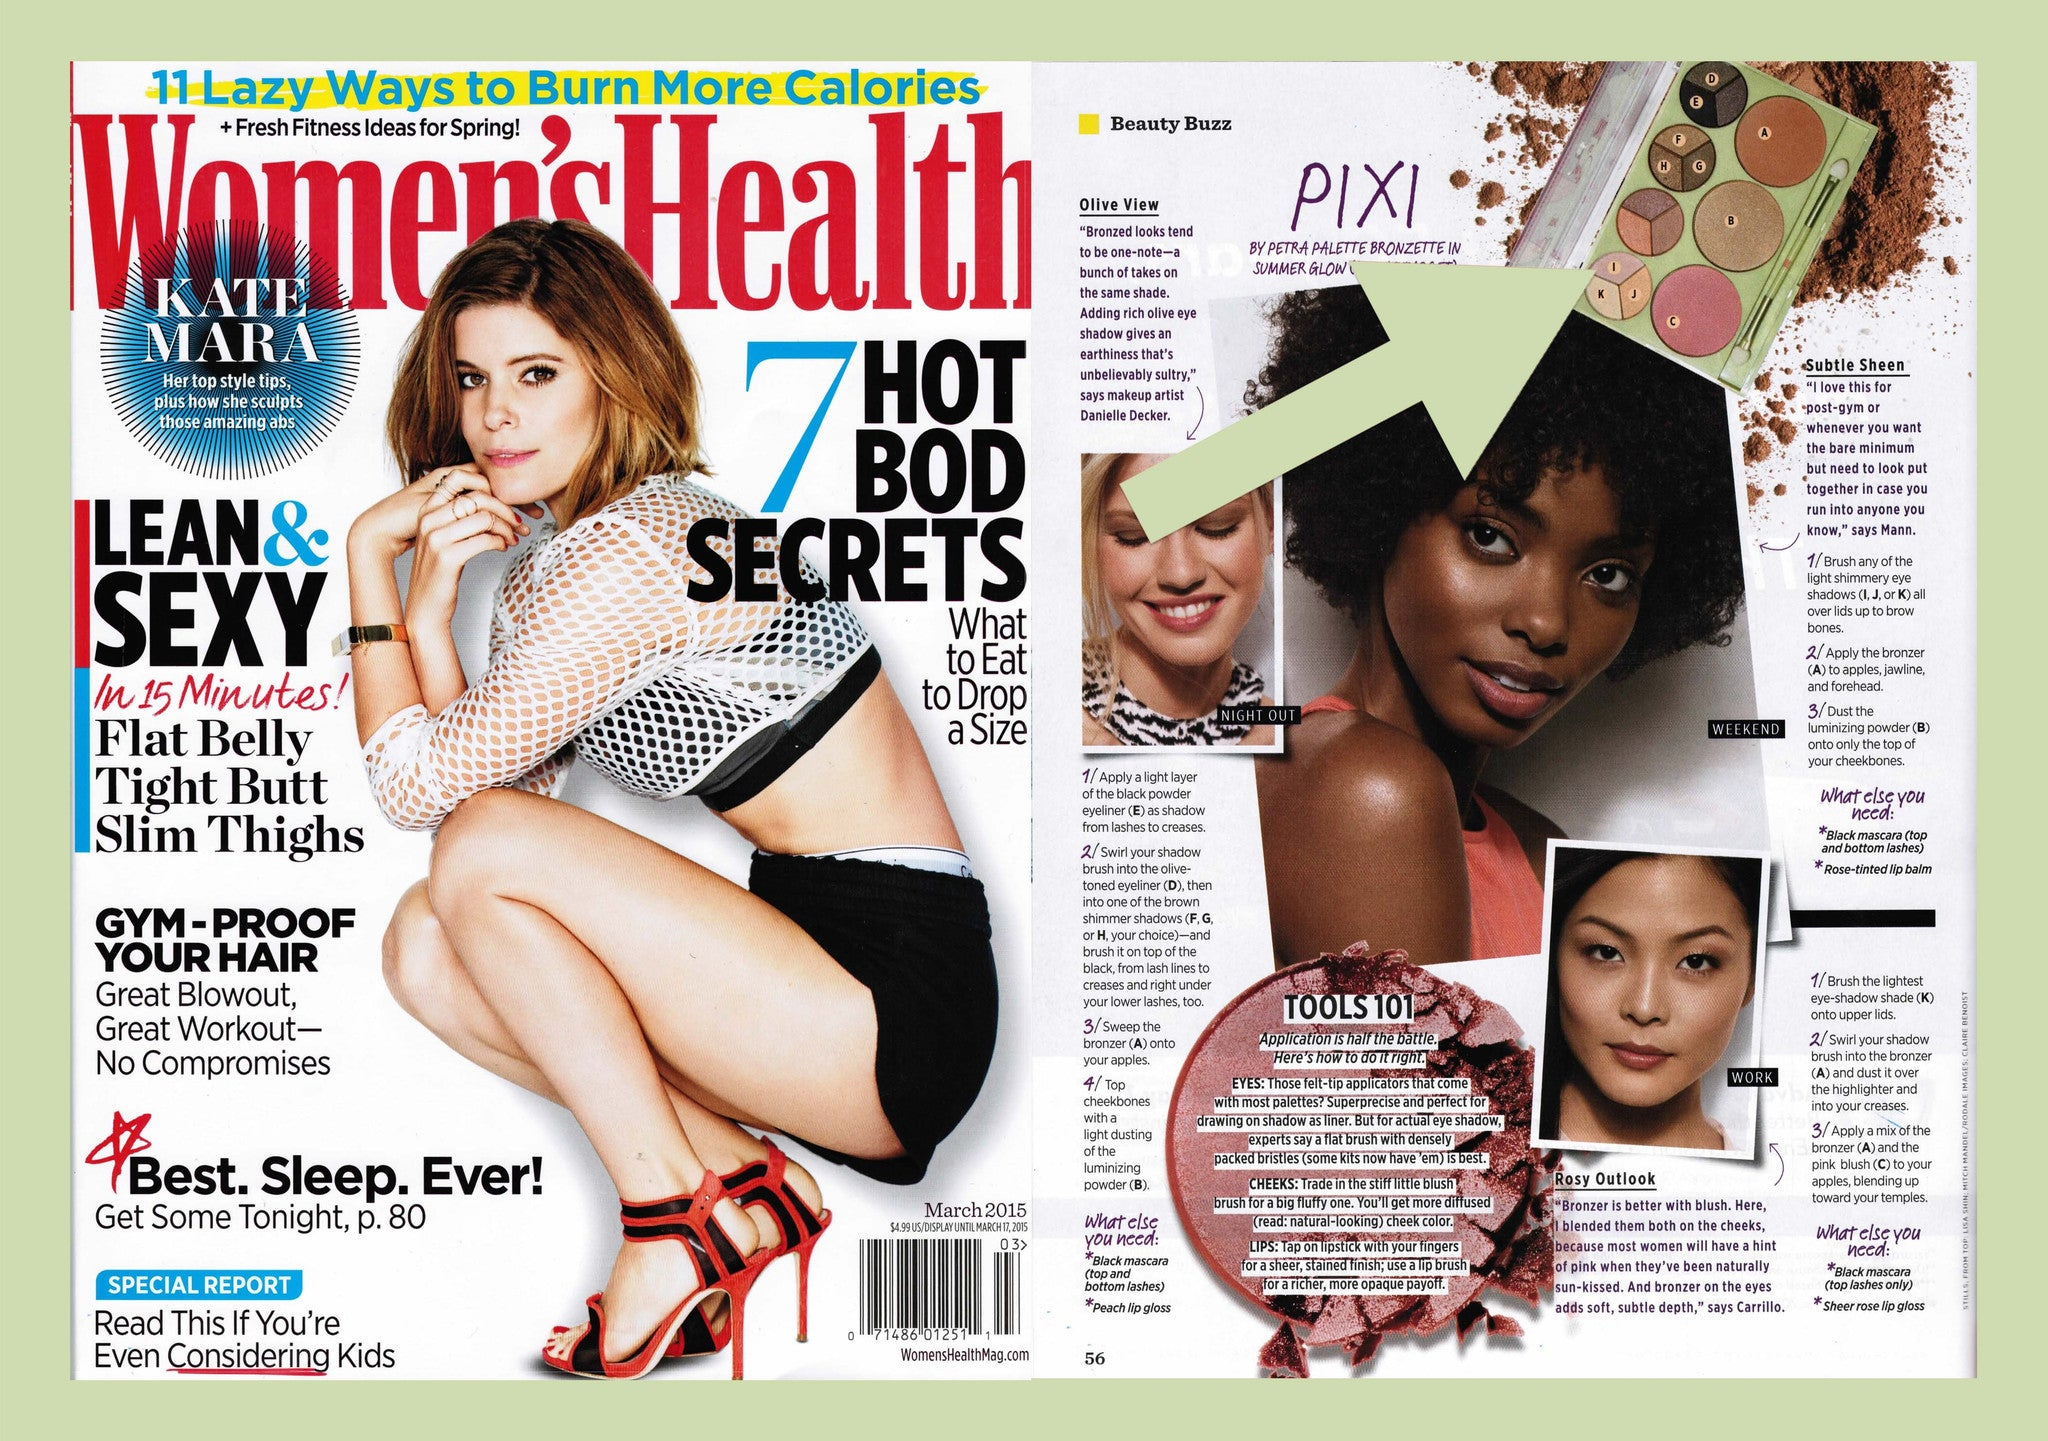 Women's Health March 2015